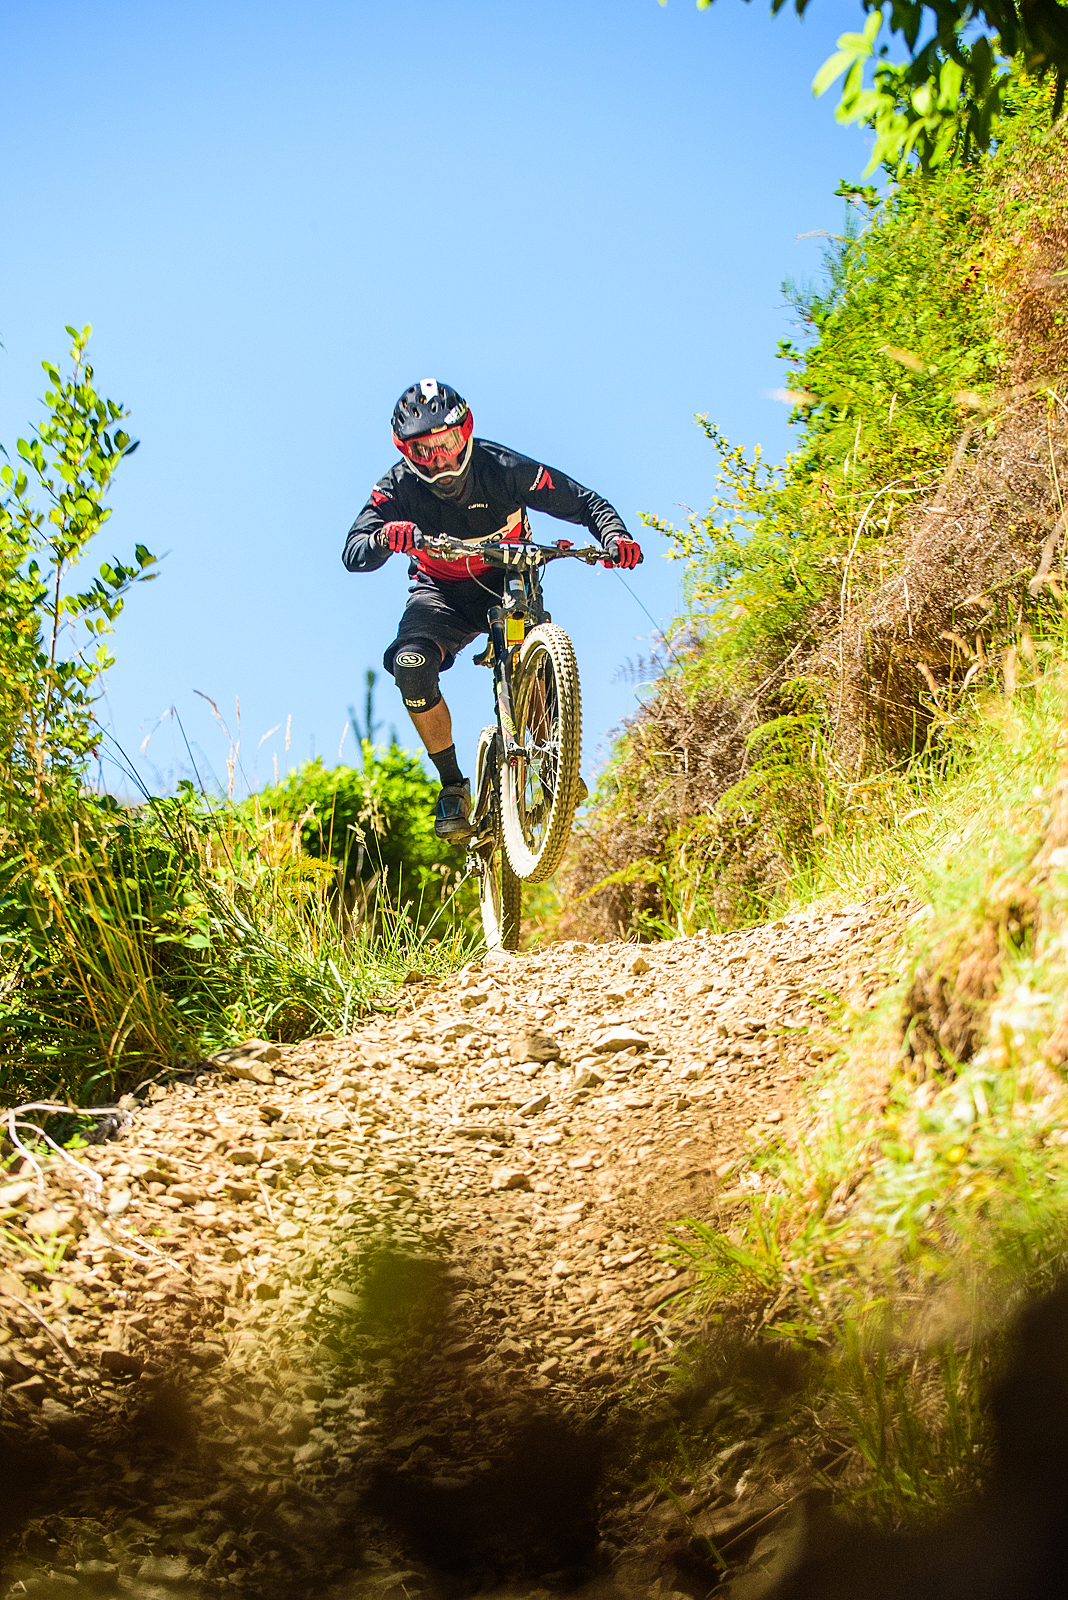 Christchurch rider, Jonas Meier flew into 6th place. Image: Digby Shaw